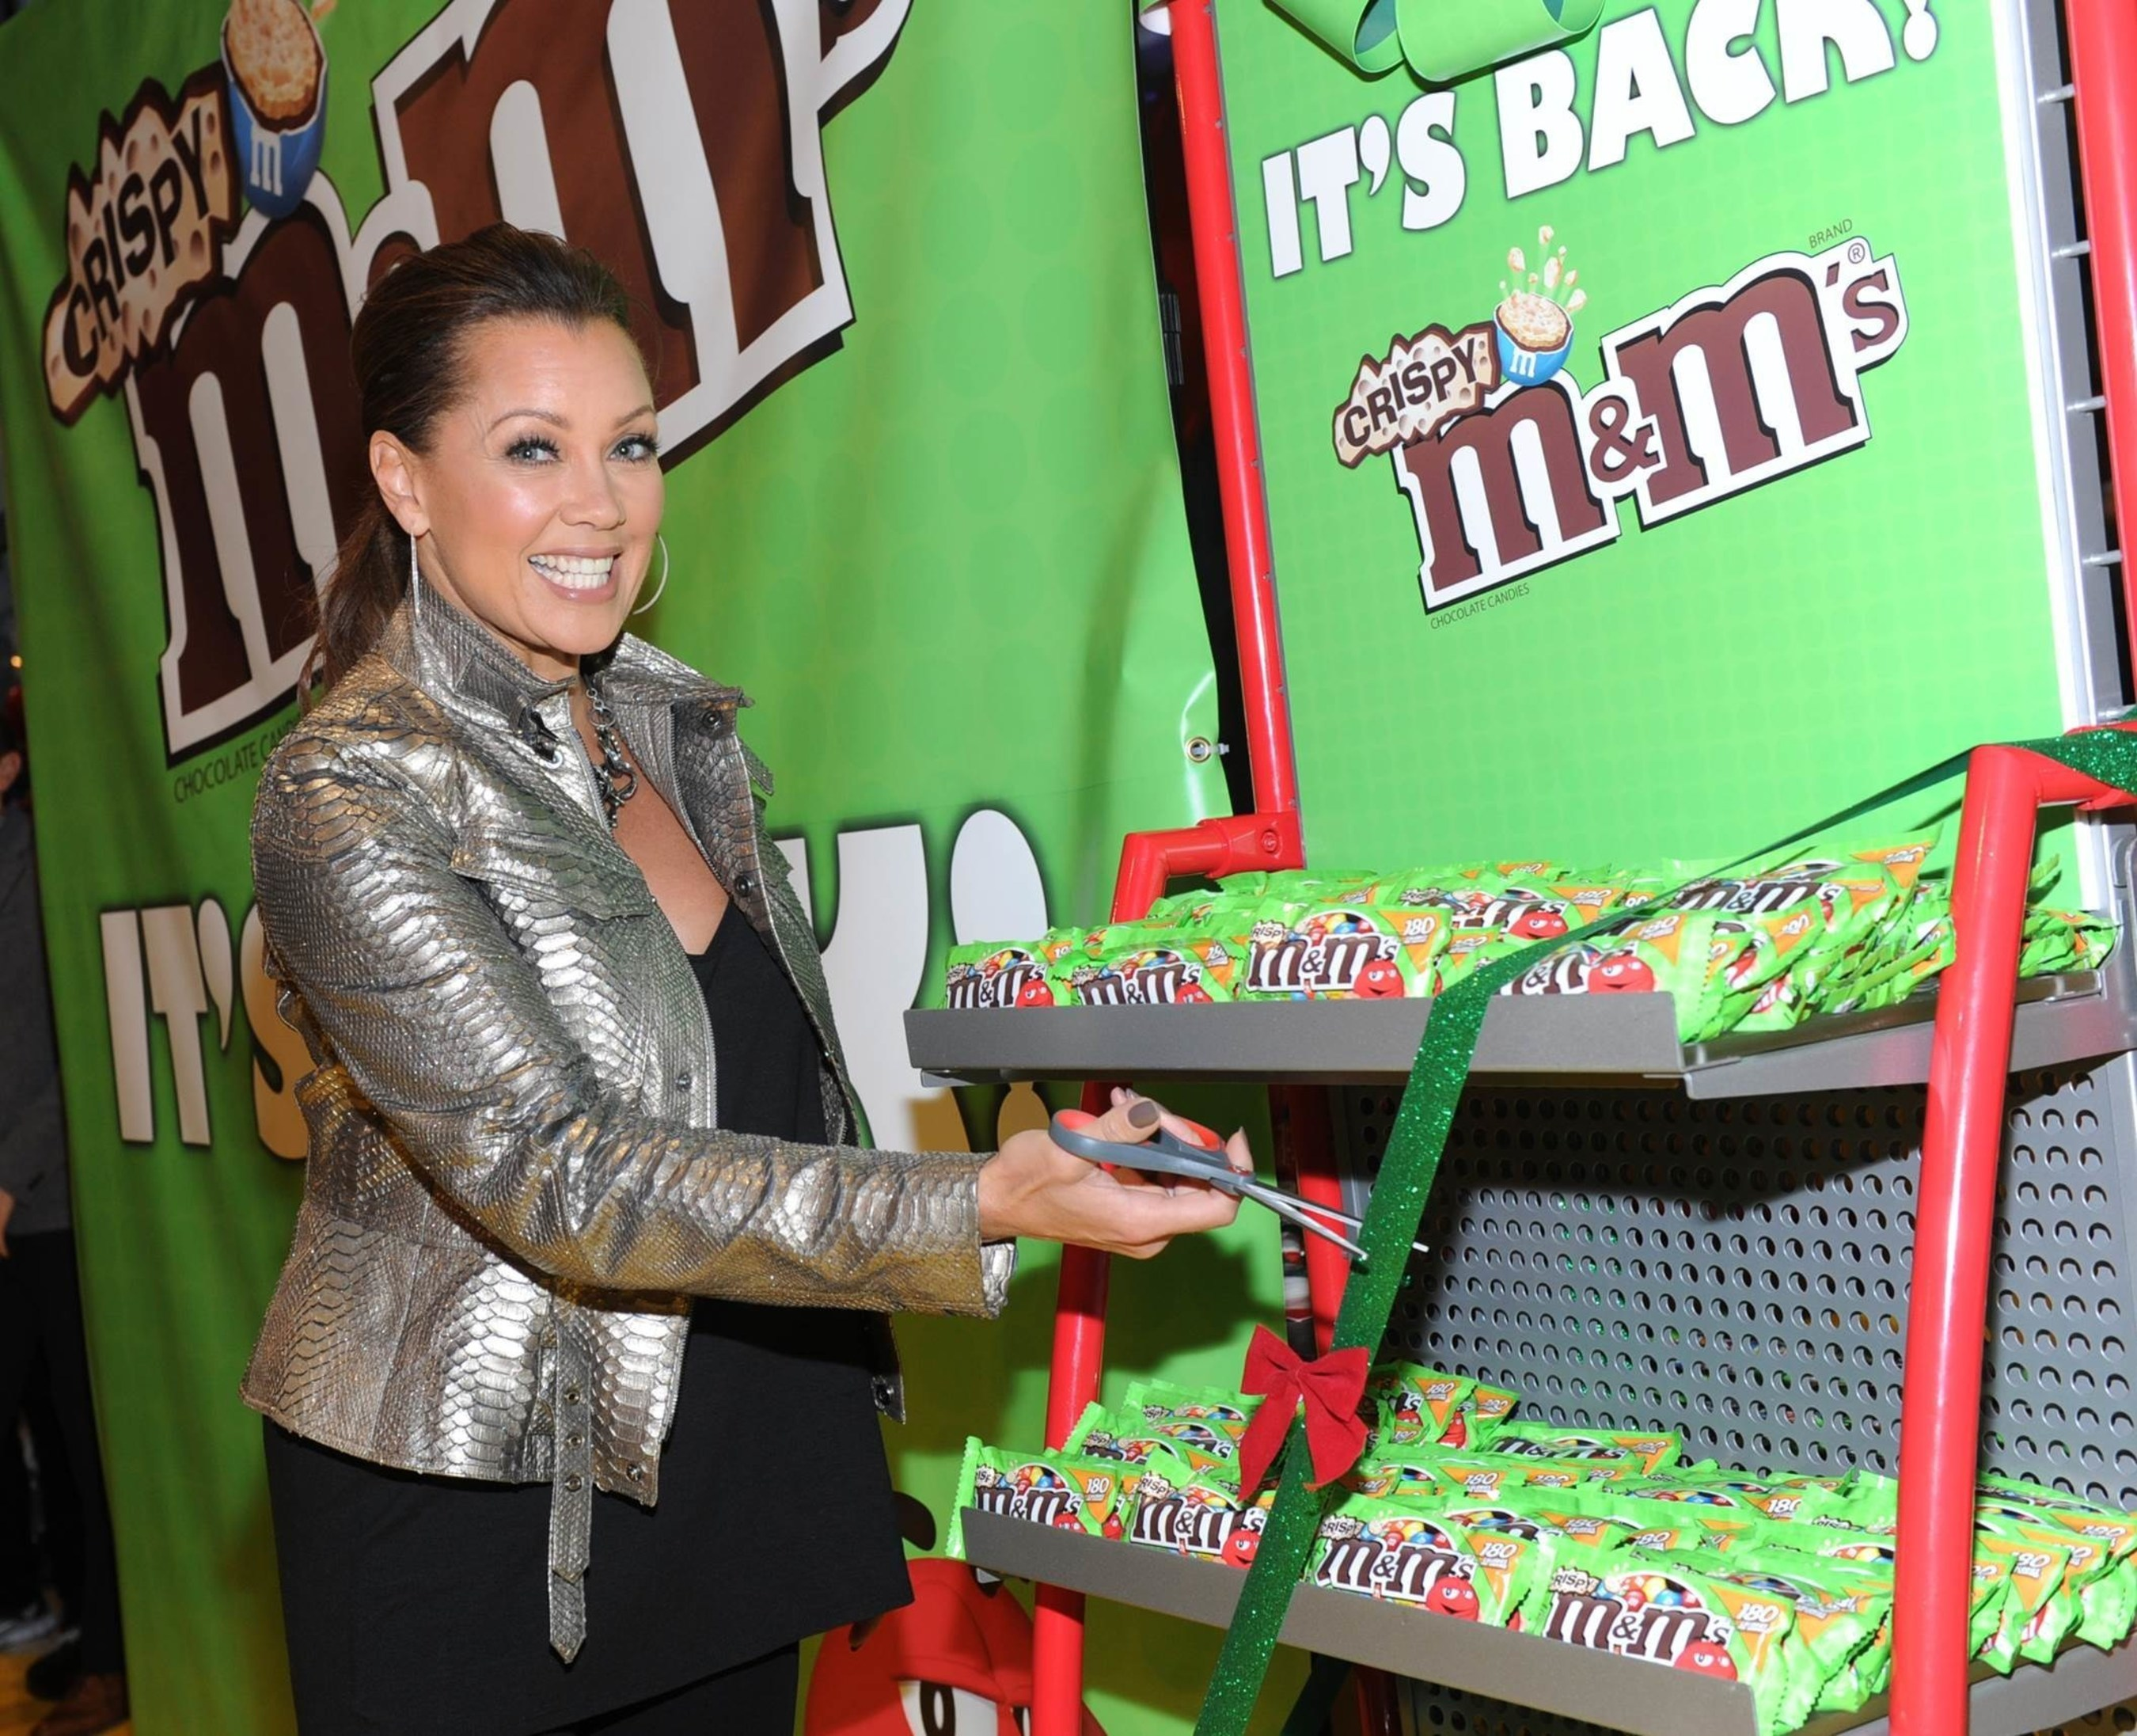 (December 9, 2014) Vanessa Williams, the multi-talented entertainer and voice behind M&M'S(R) Brand spokescandy Ms. Brown, unveils the first tubes of M&M'S(R) Crispy on the famous M&M'S World(R) Candy Wall featured at the store in Times Square. (Photo by Diane Bondareff for Mars Chocolate North America)